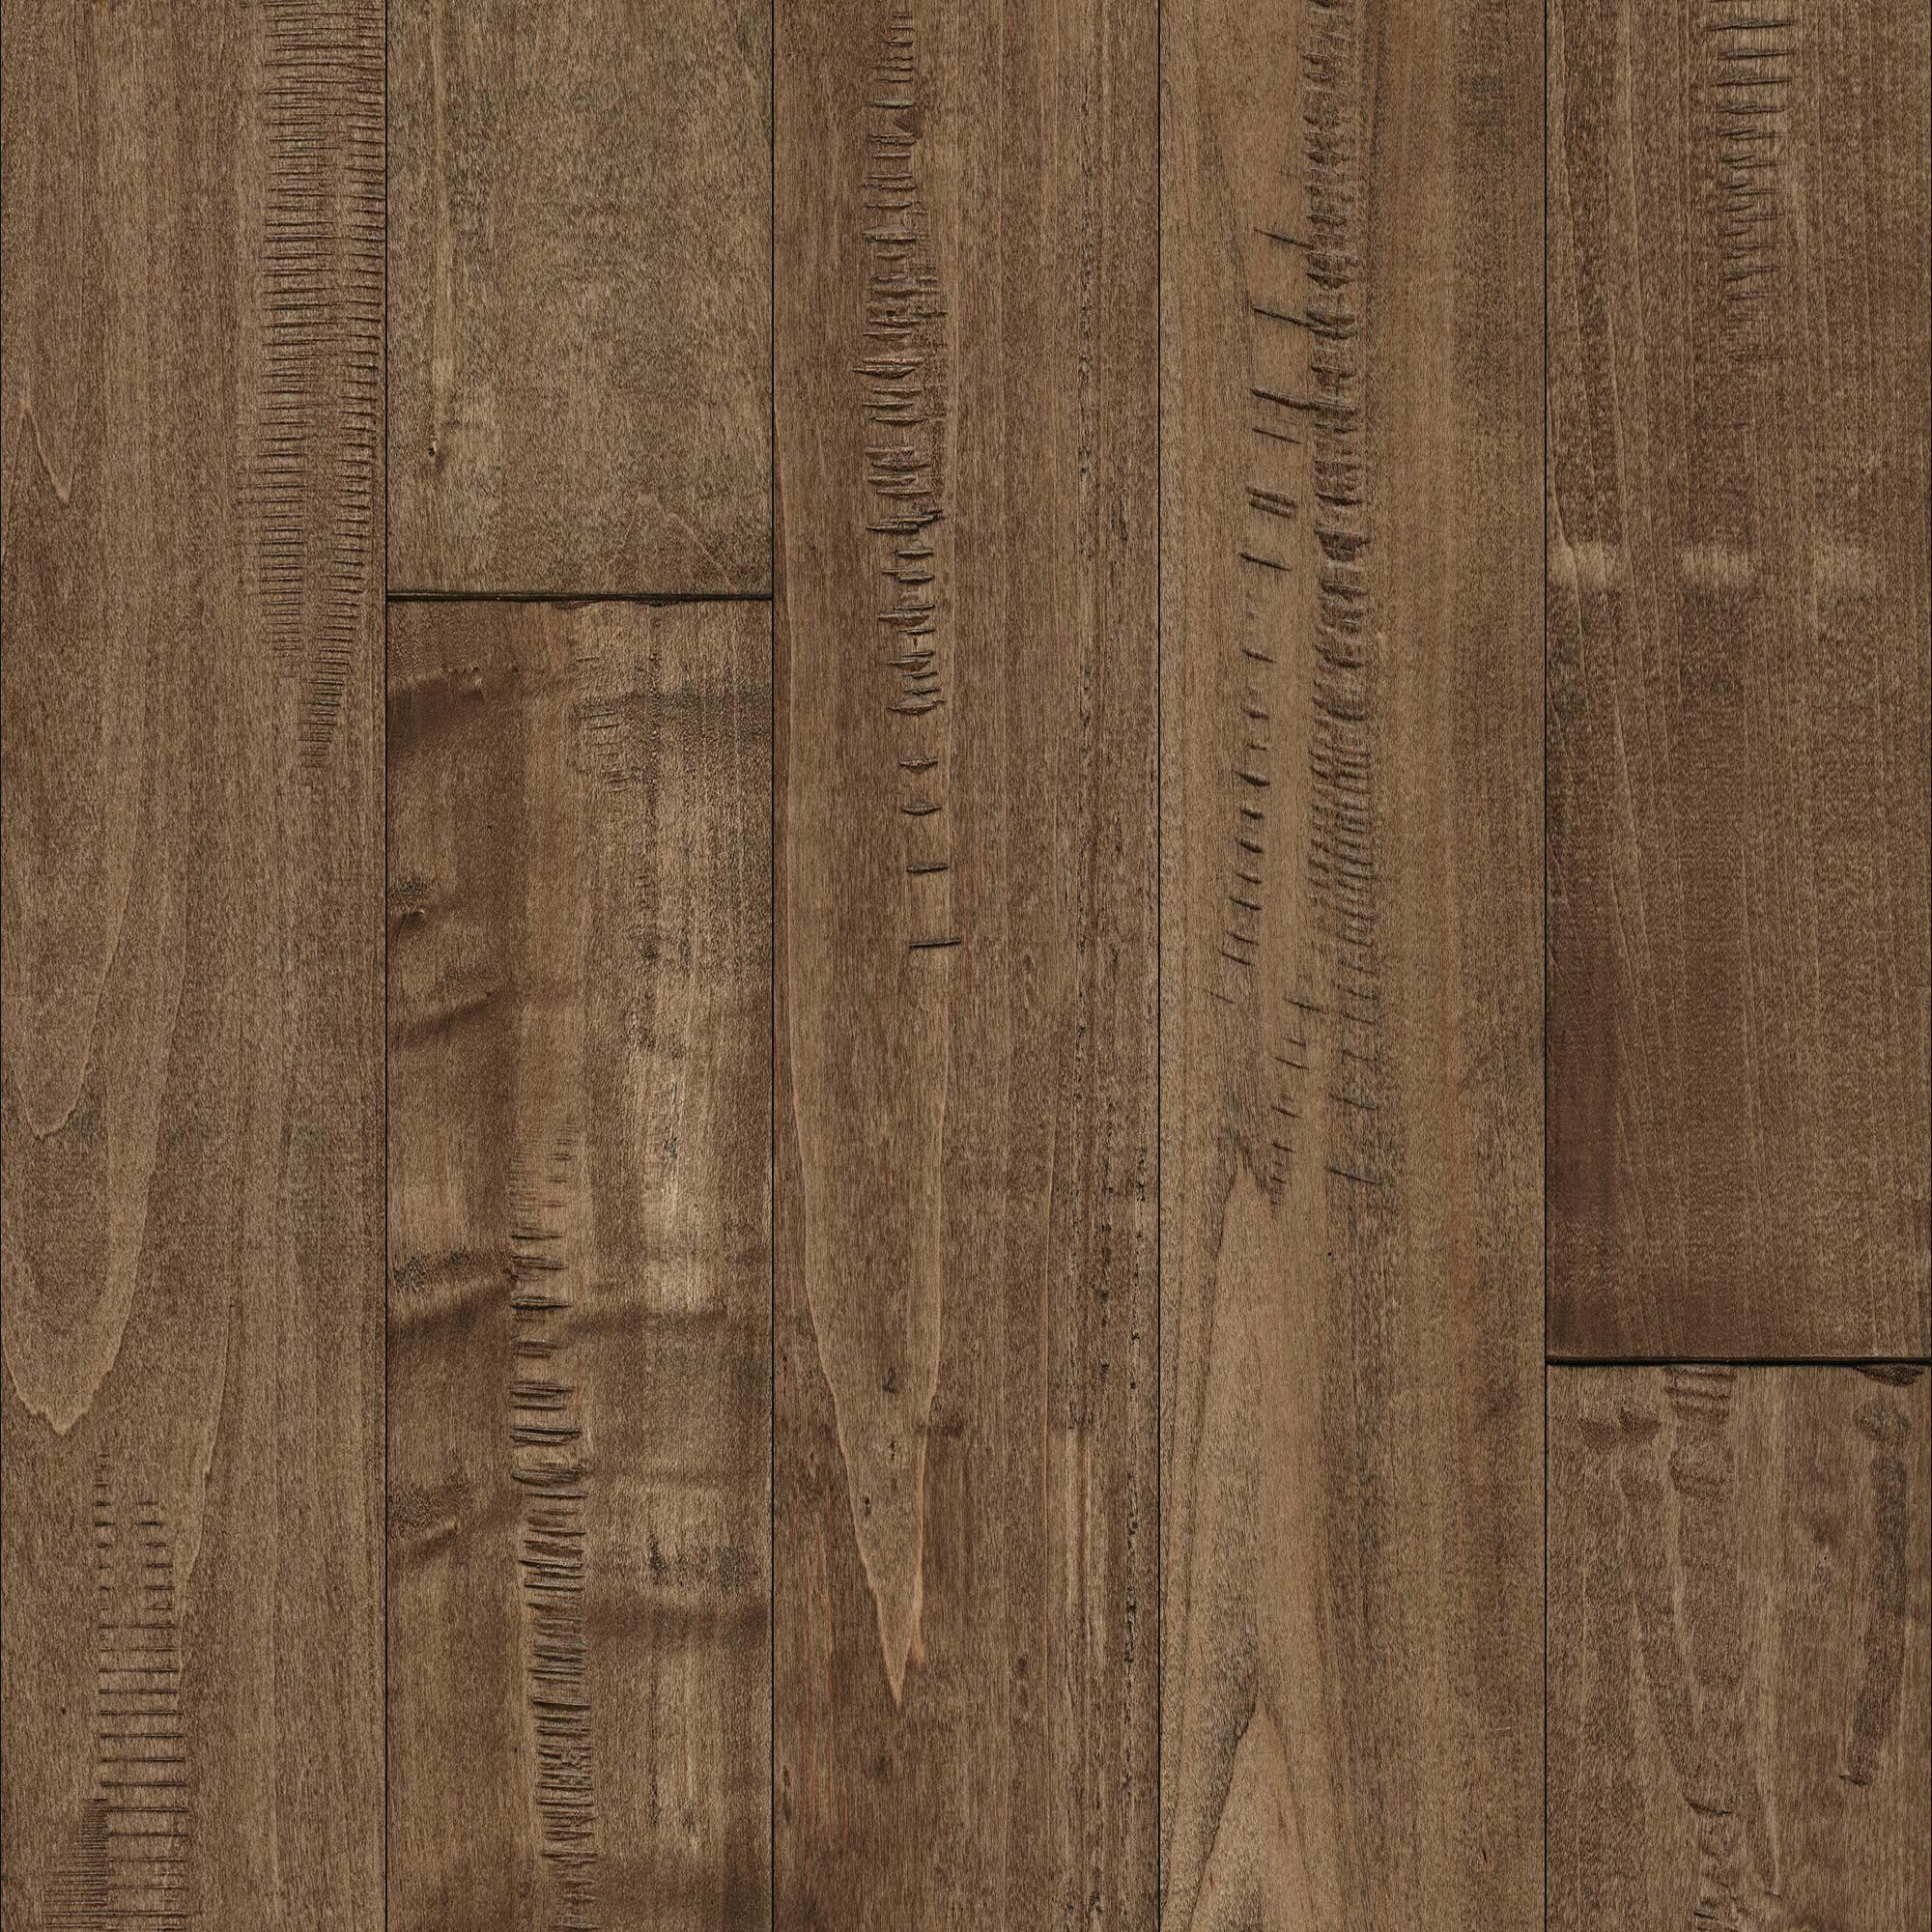 28 Fashionable Maple Hardwood Flooring Hand Scraped 2021 free download maple hardwood flooring hand scraped of kingsmill pacific maple handscraped 4 wide 3 4 solid hardwood flooring intended for pacific m upac4 4 x 60 approved